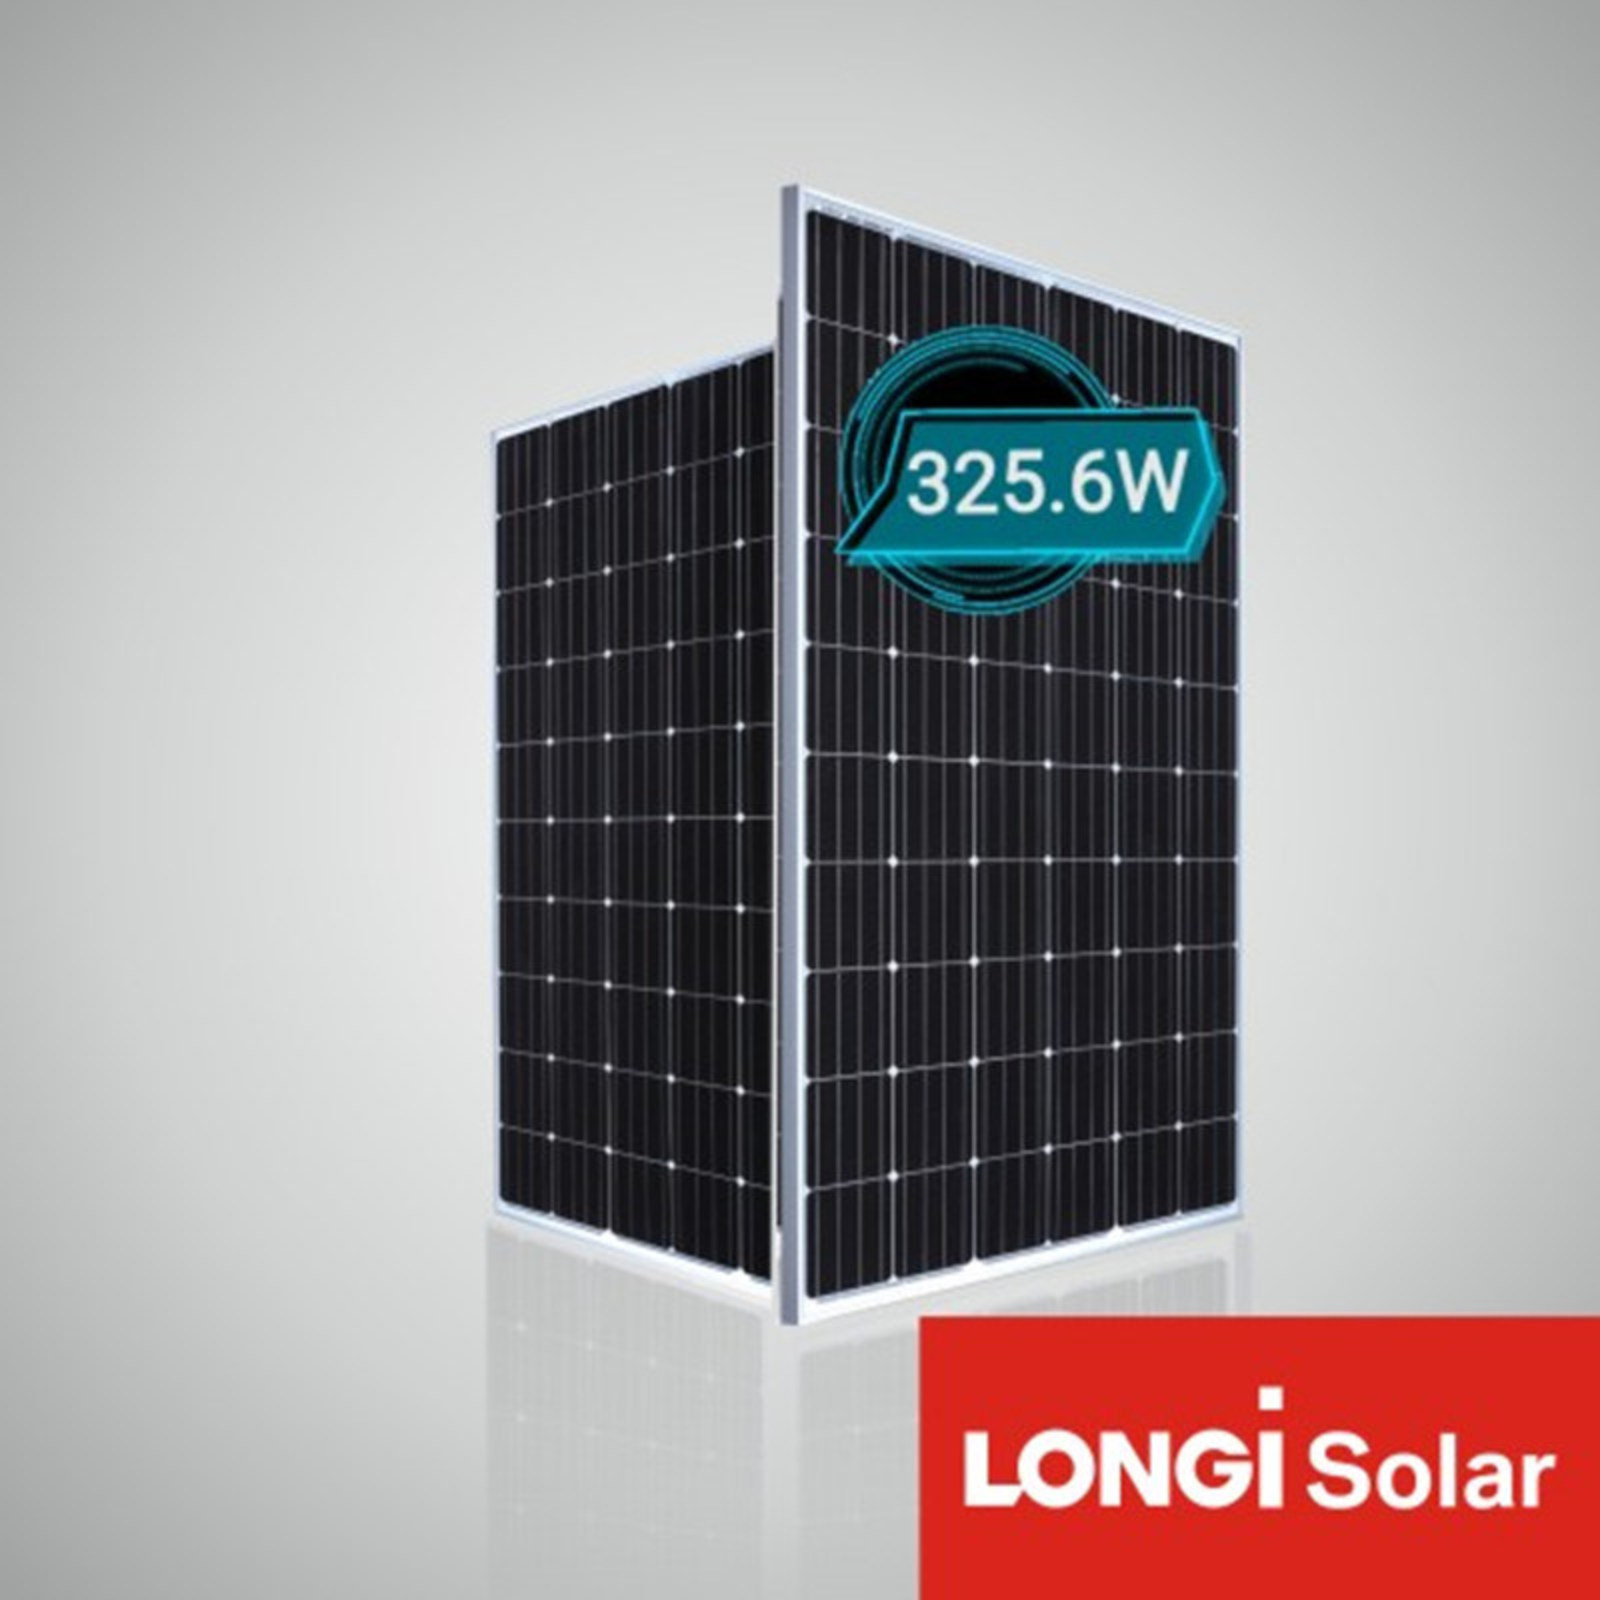 'Silicon Module Super League' (SMSL) member LONGi Solar, and the world's largest manufacturer of monocrystalline solar cells & modules, will introduce its 300W+ solar module series, based on 60-cell standard modules with over 300W nominal power and 72-cell modules exceeding 360W at Solar Power International. Image: LONGi Solar